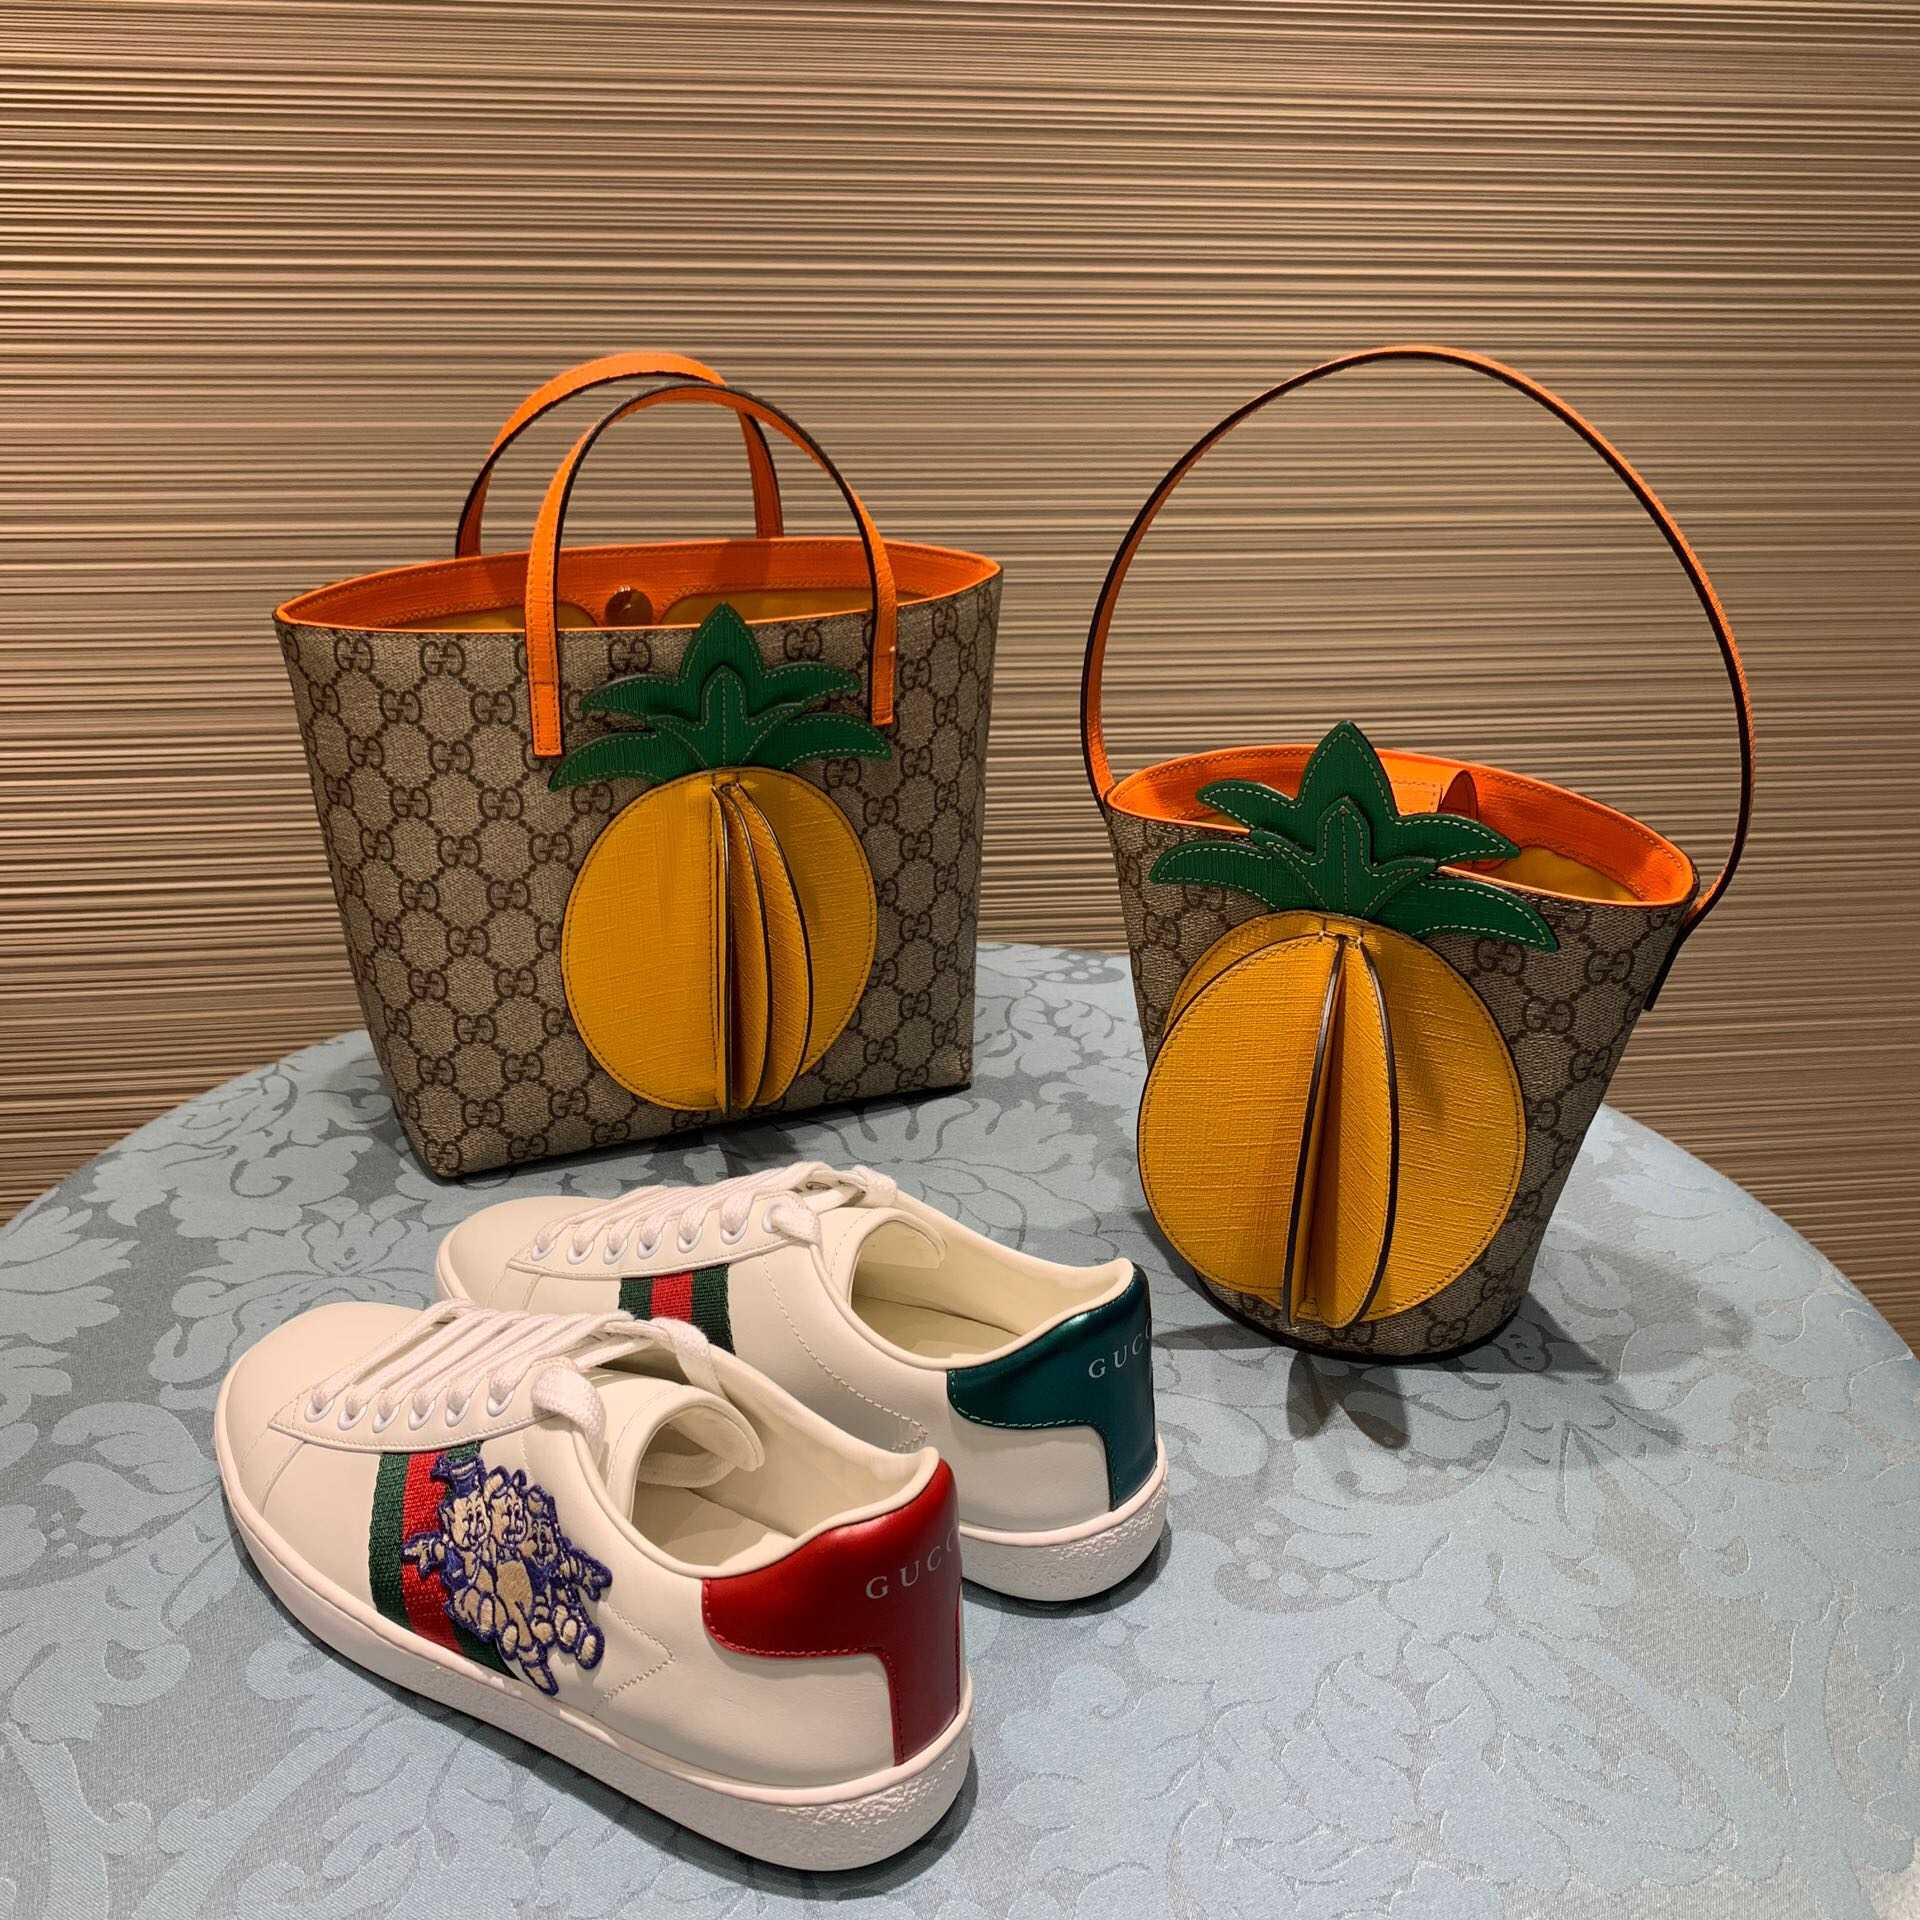 Gucci Children's GG bucket bag with pineapple 580850